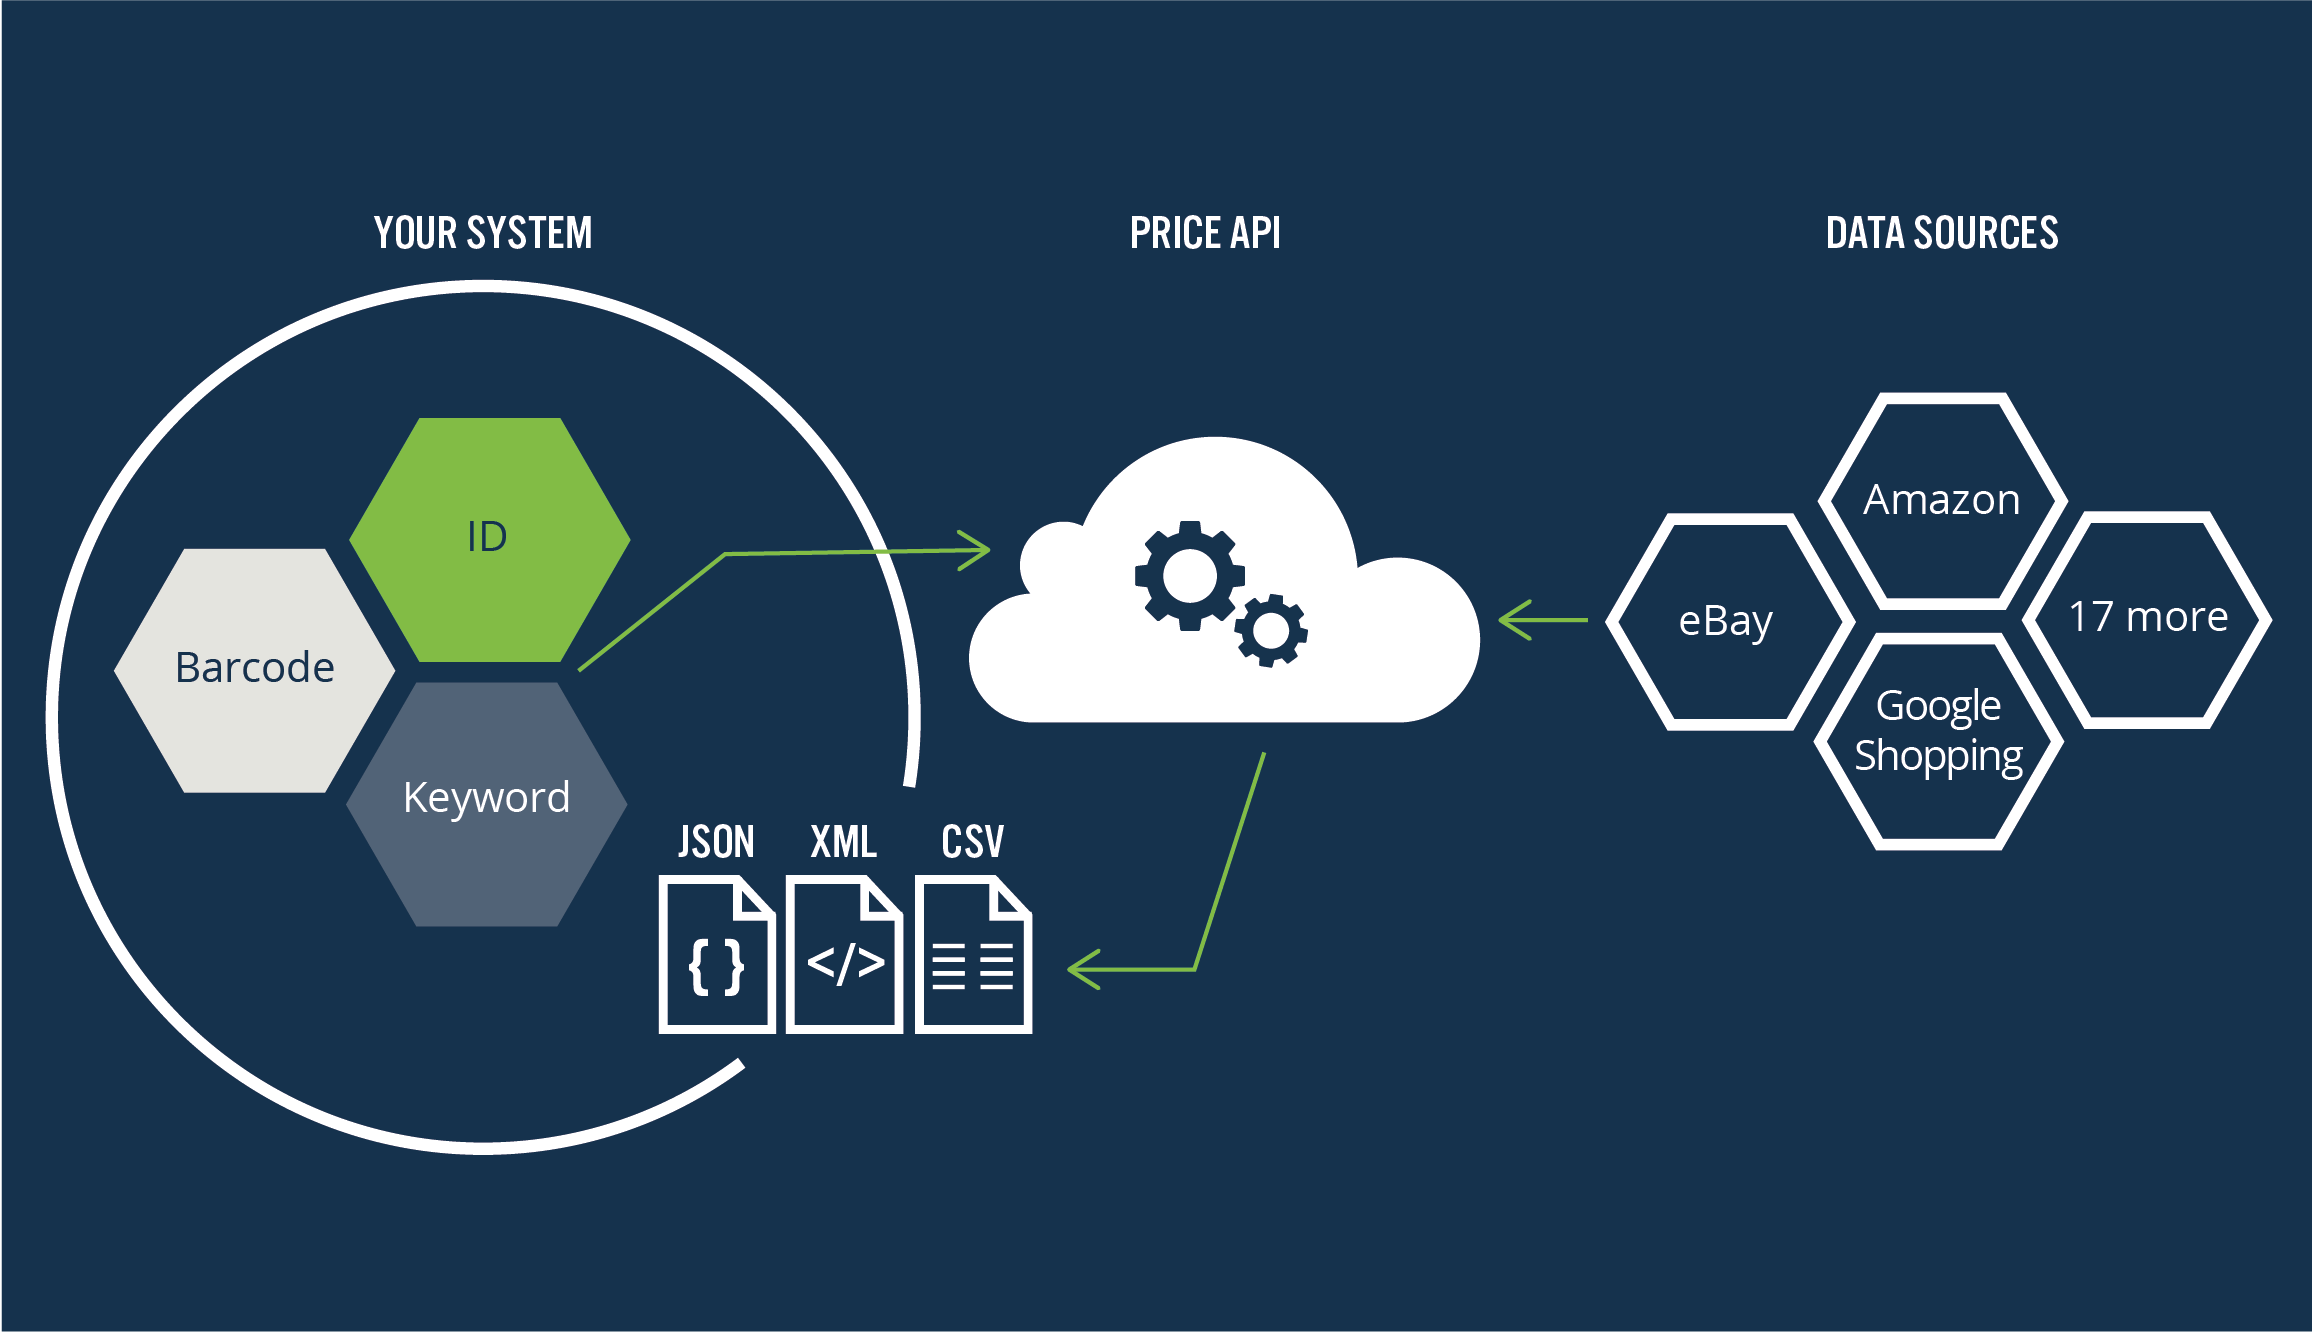 How Price API works